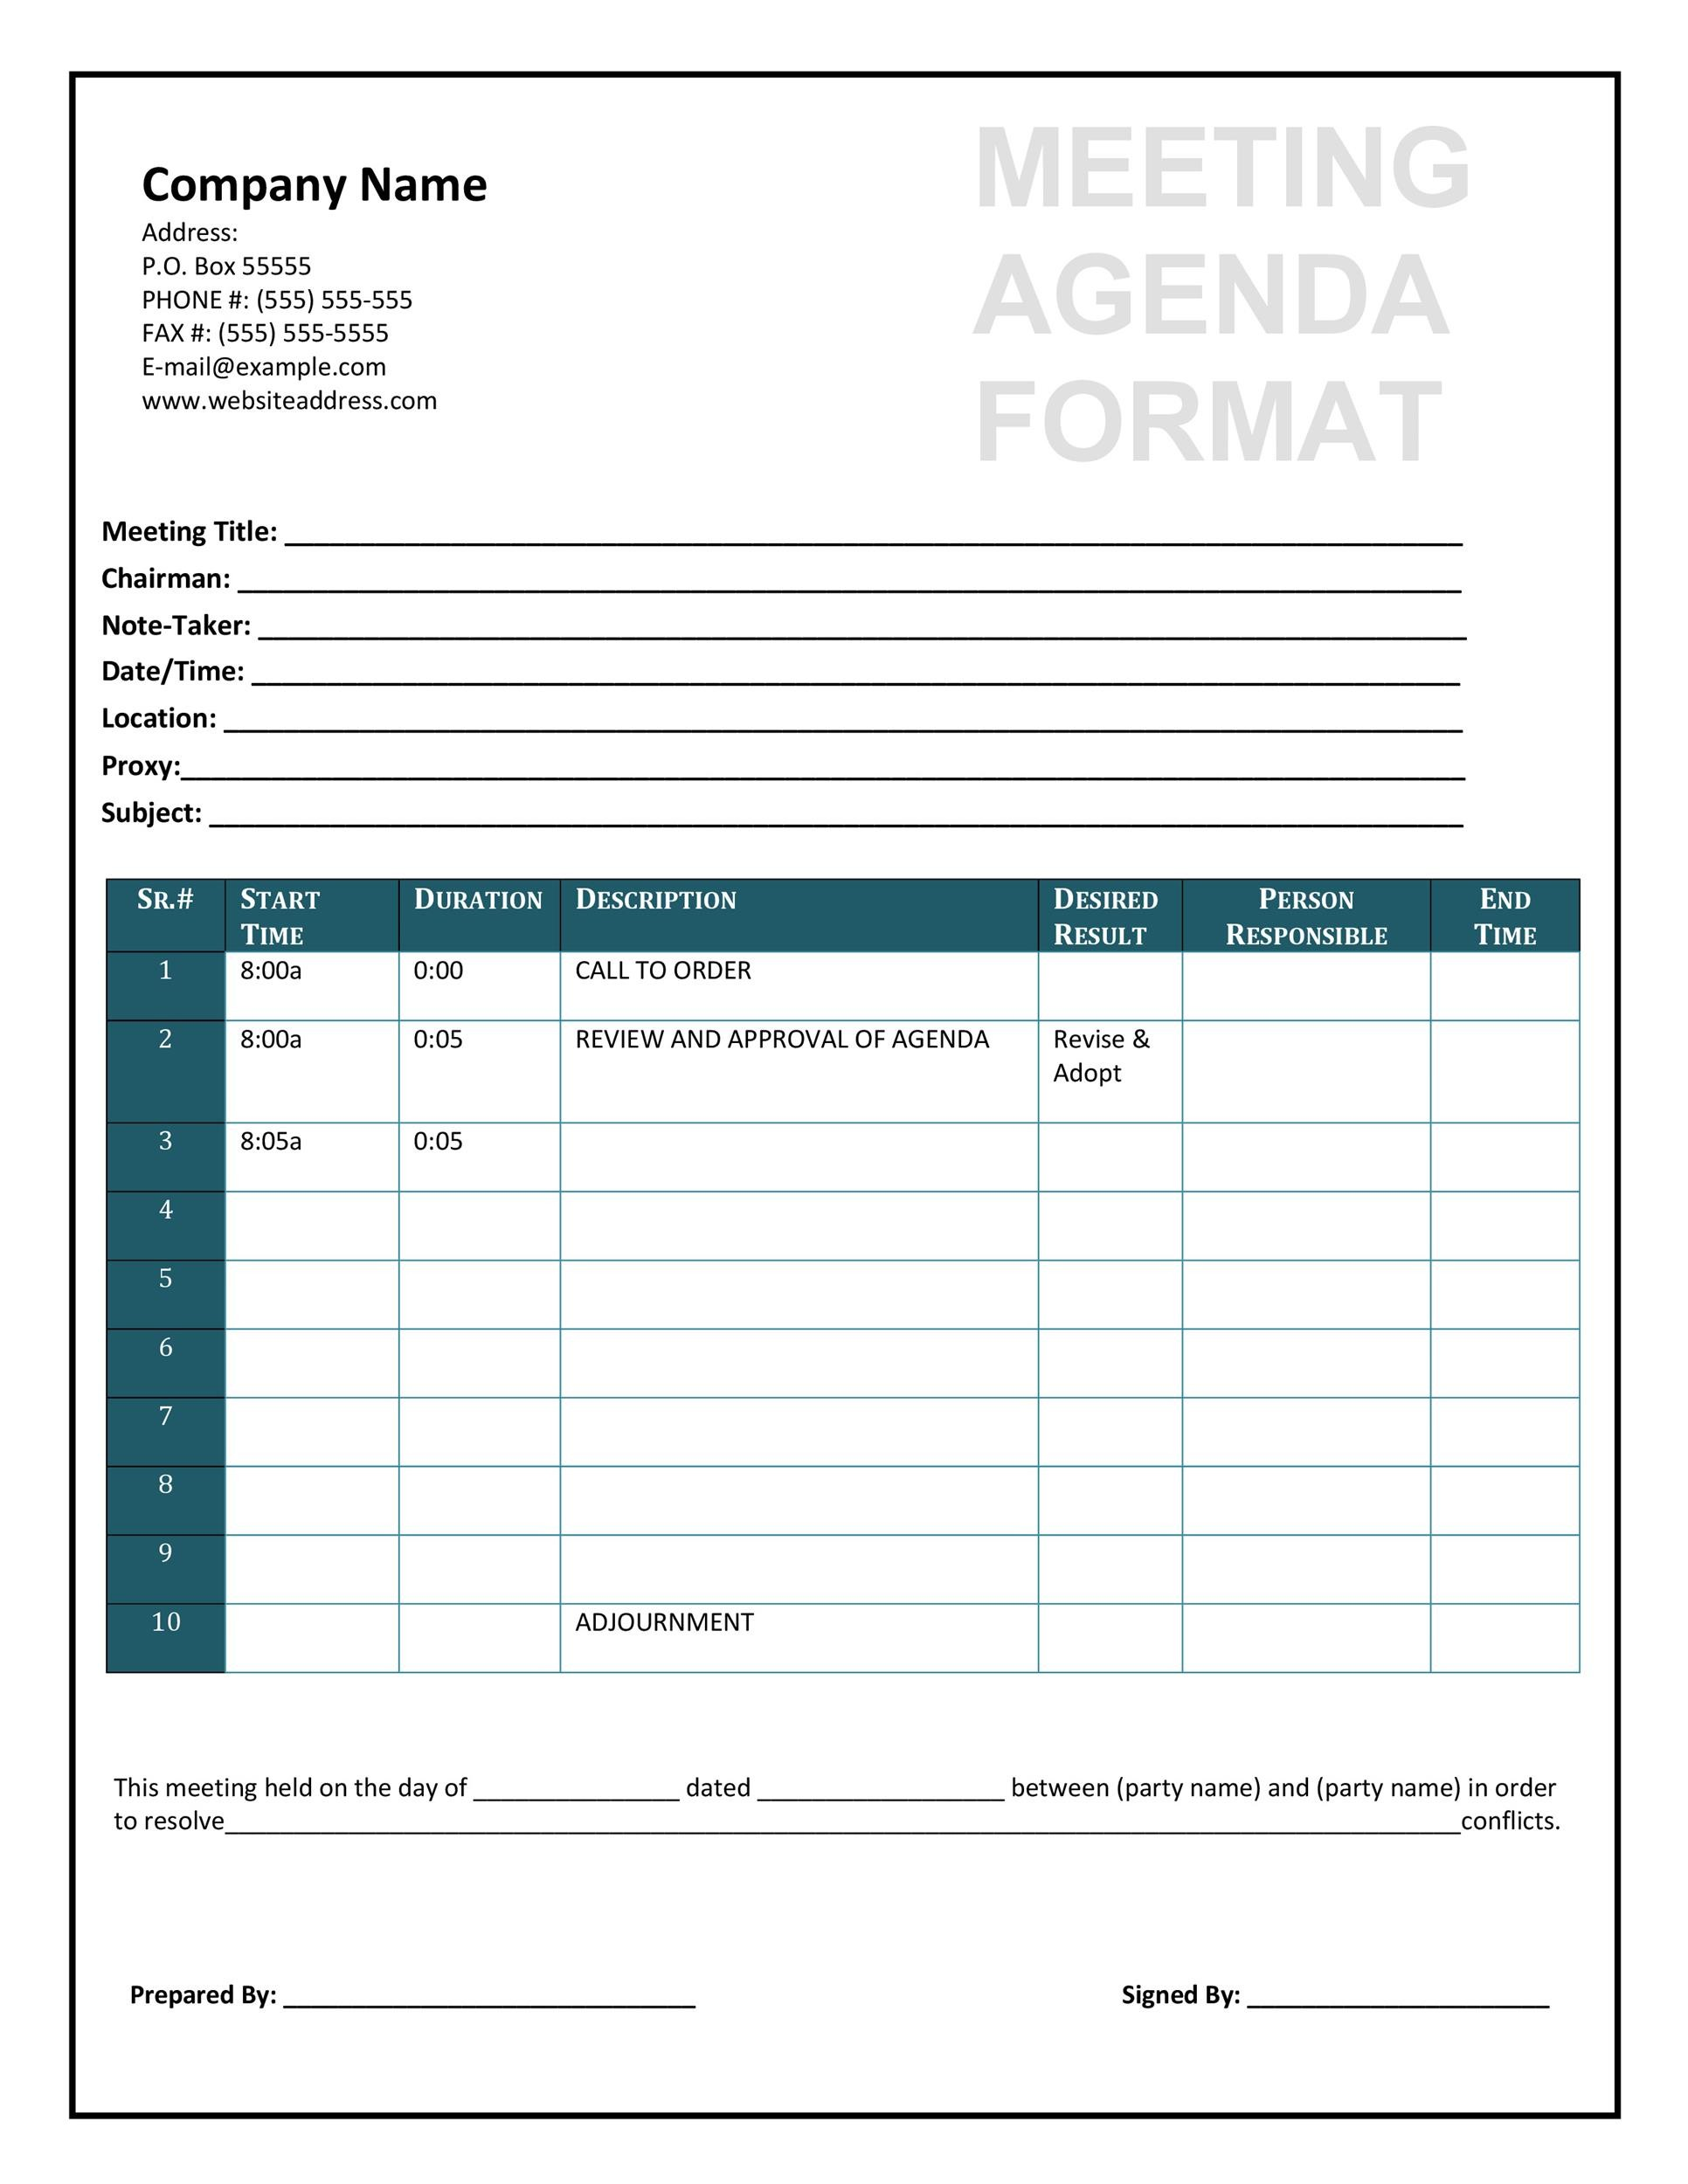 Printable Meeting Agenda Template 09  Free Meeting Agenda Templates